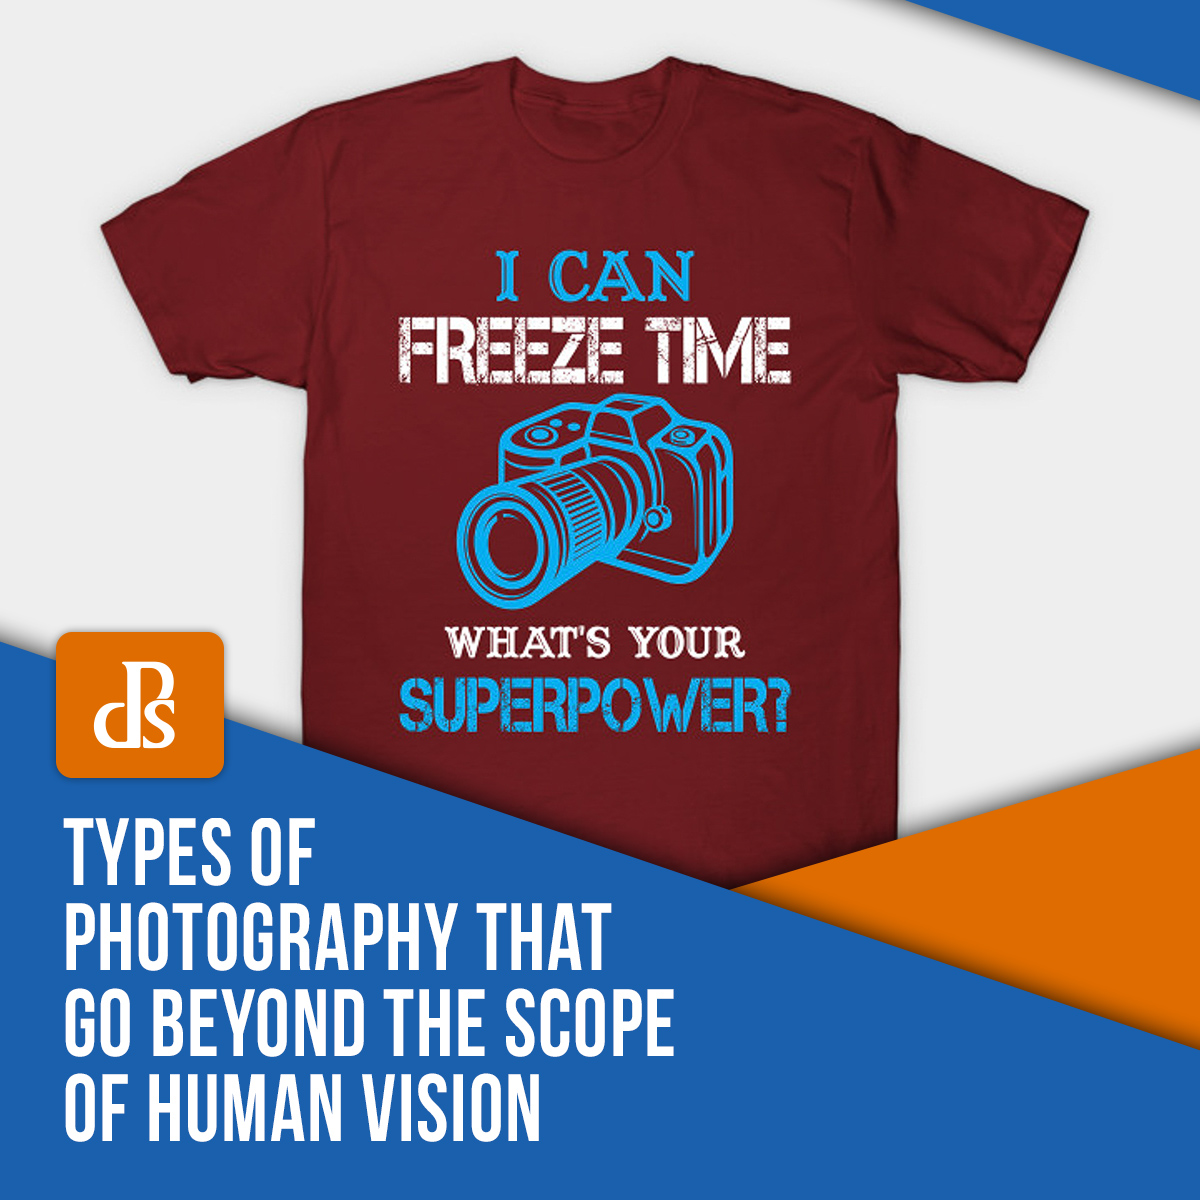 Types of Photography that go Beyond the Scope of Human Vision